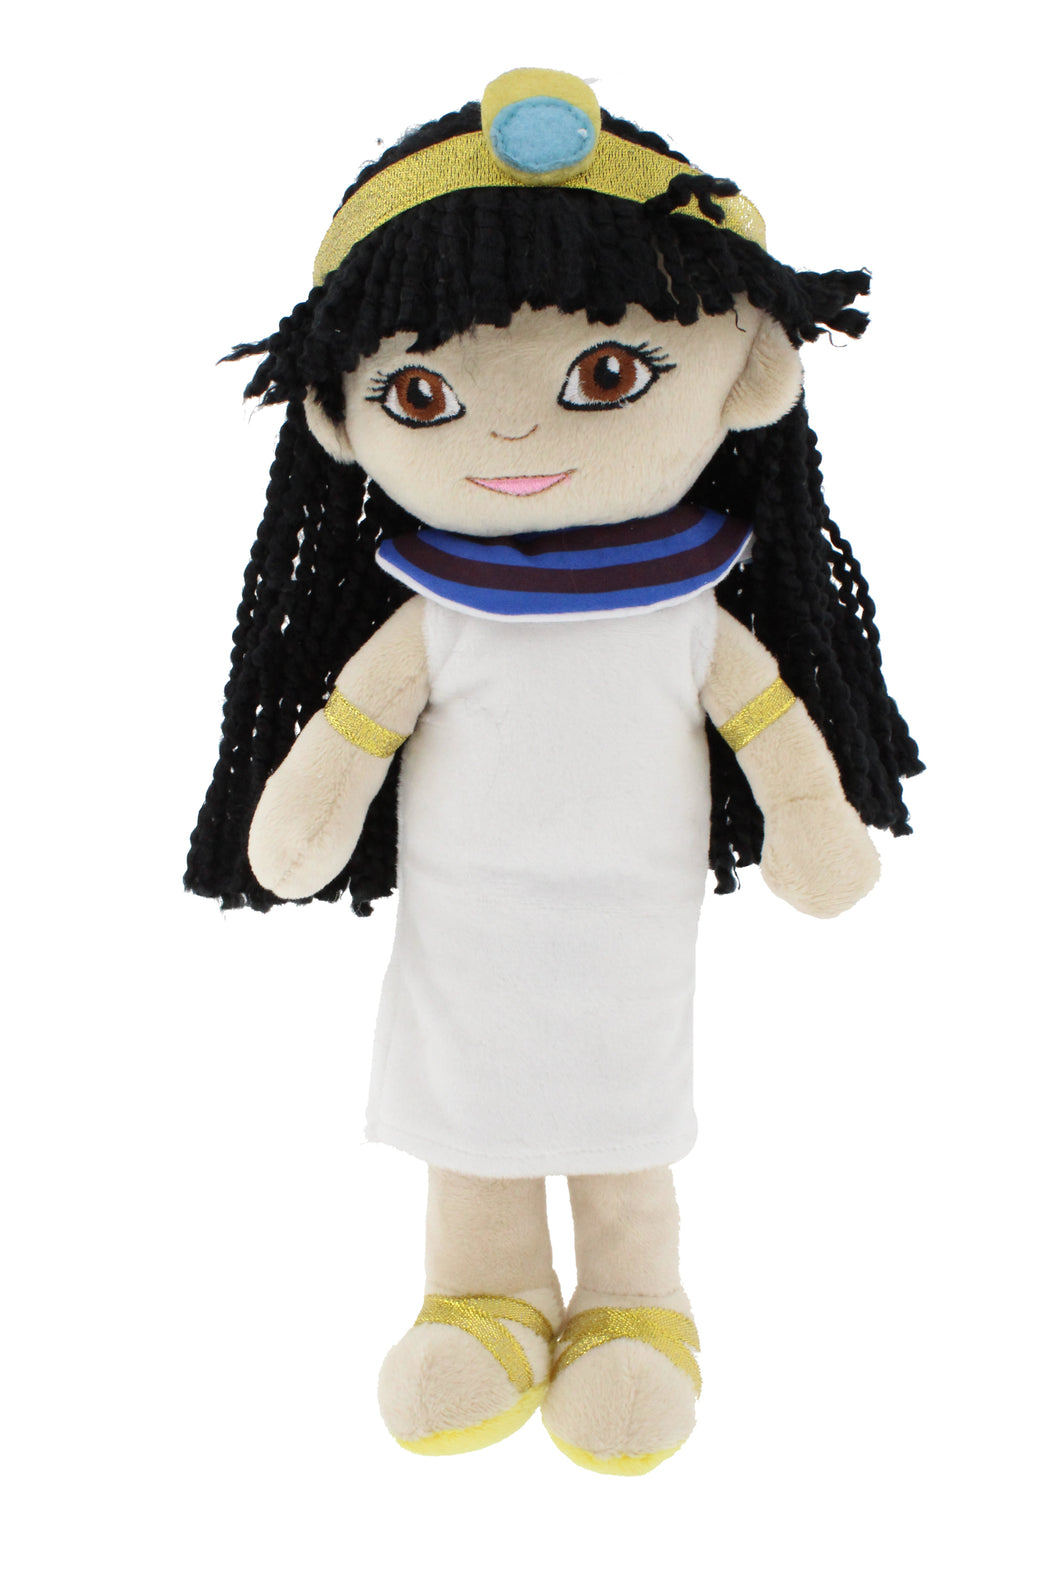 Plush stuffed doll, a girl dressed in ancient Egyptian clothing with a white dress and a golden crown.